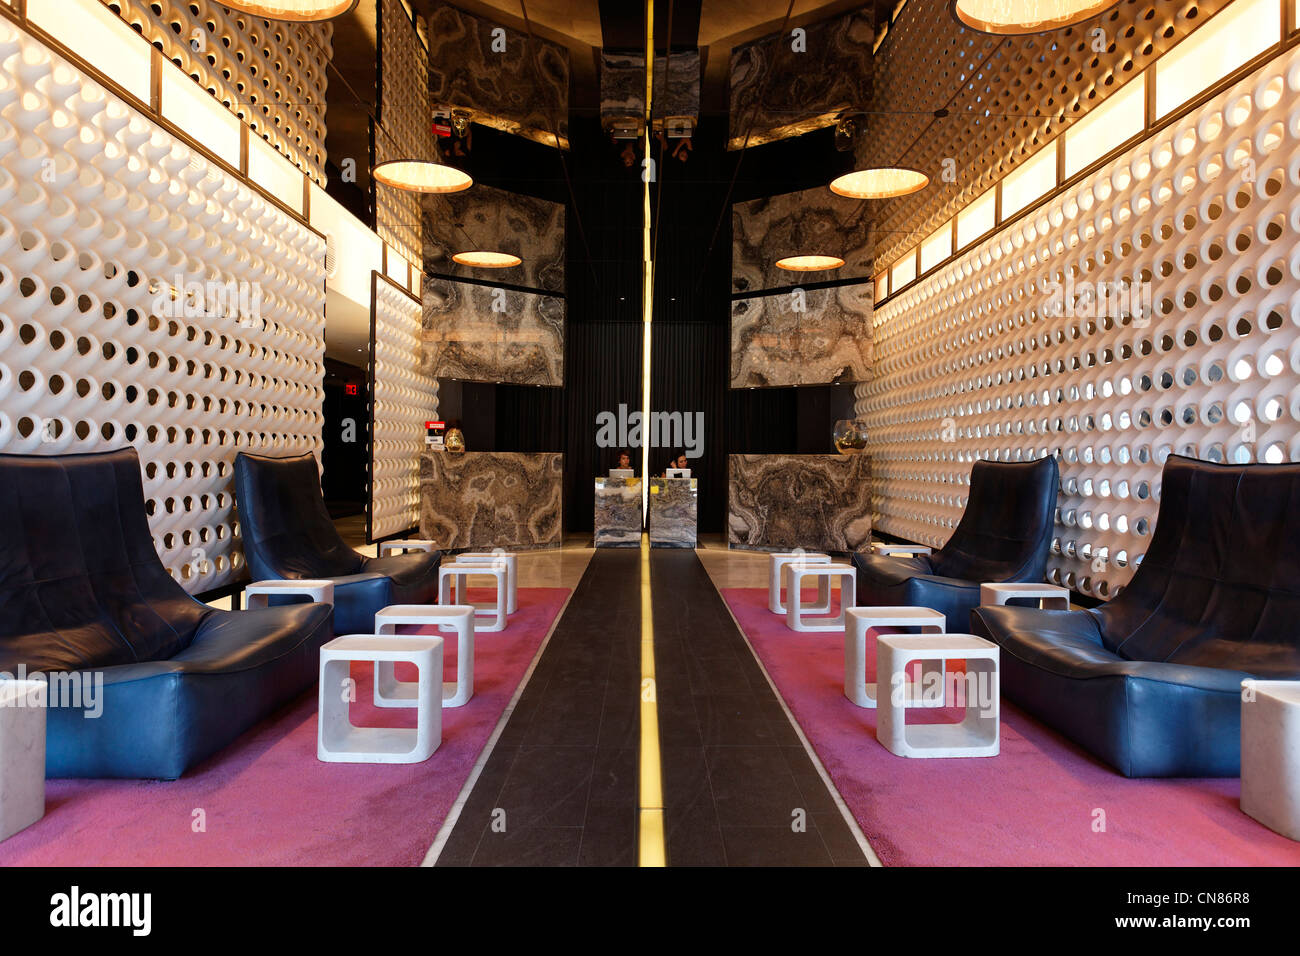 United States, New York City, Manhattan, Meatpacking District, Standard Hotel, lobby and reception desk, 848 Washington - Stock Image